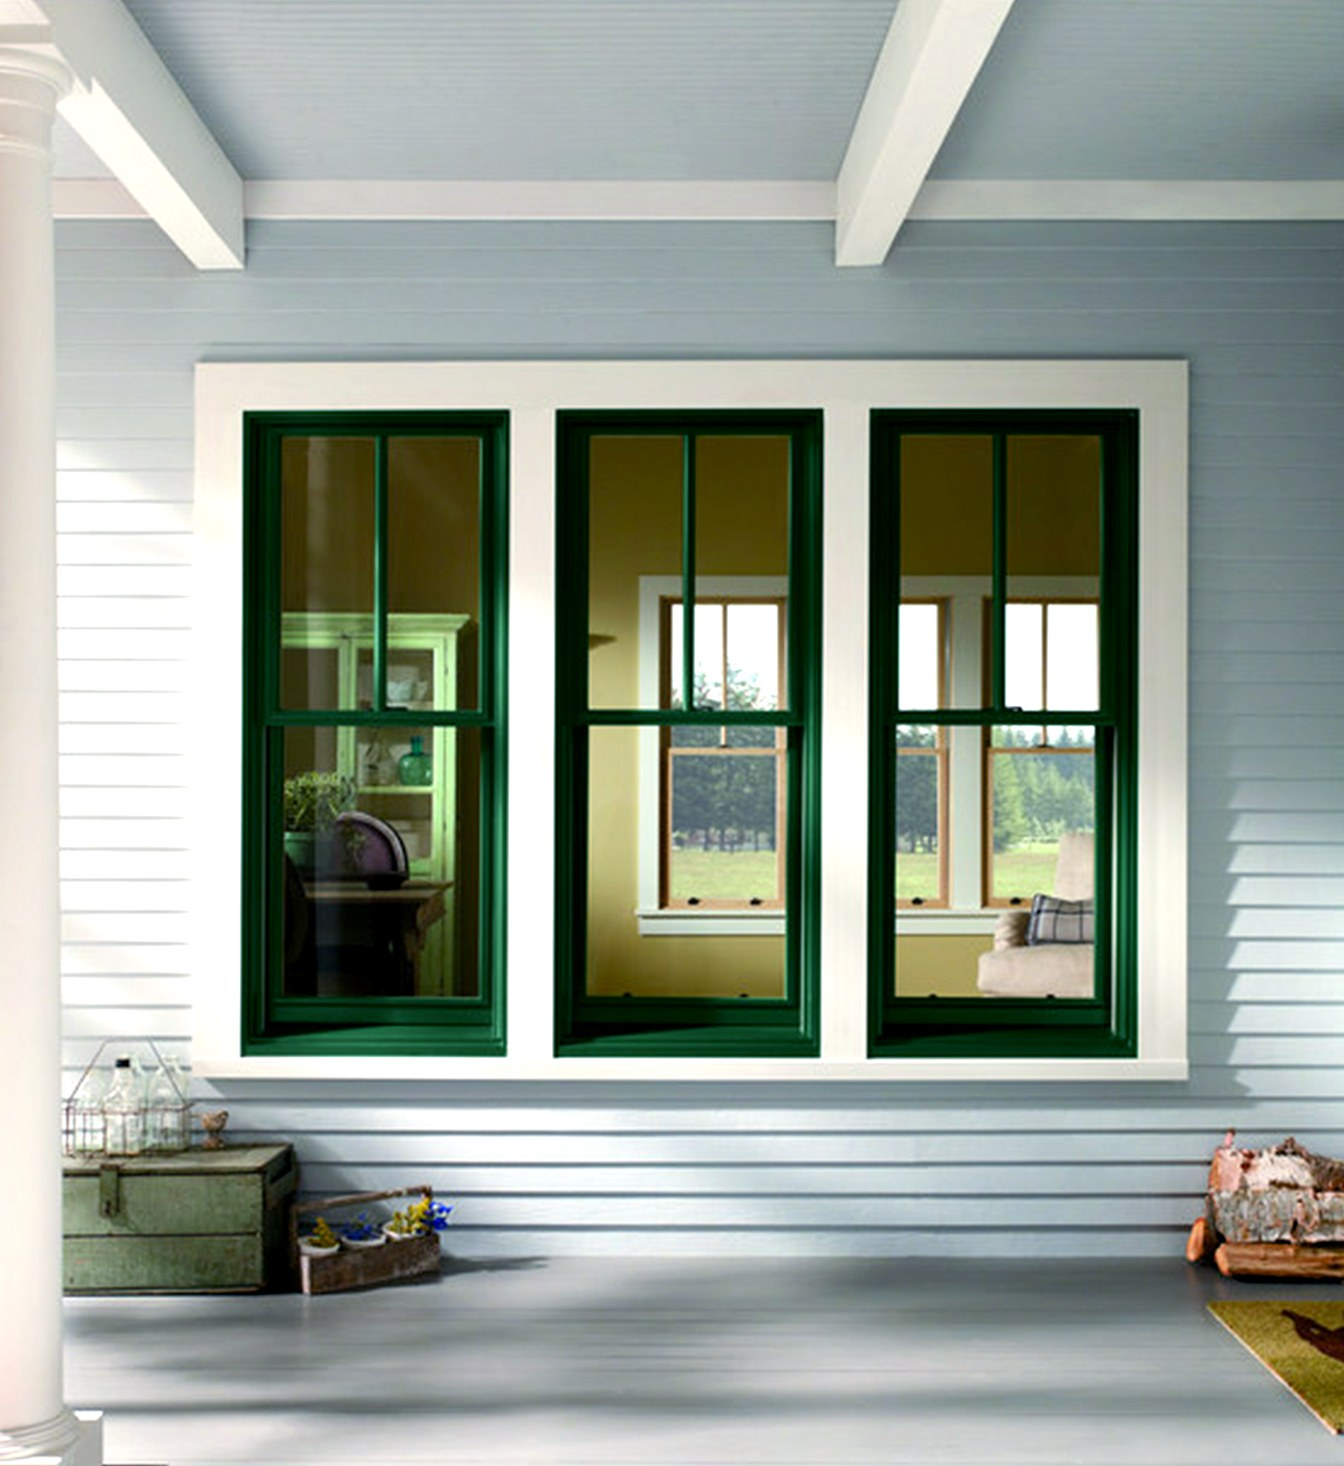 Gallery design center energy efficient windows temple tx for Most energy efficient windows